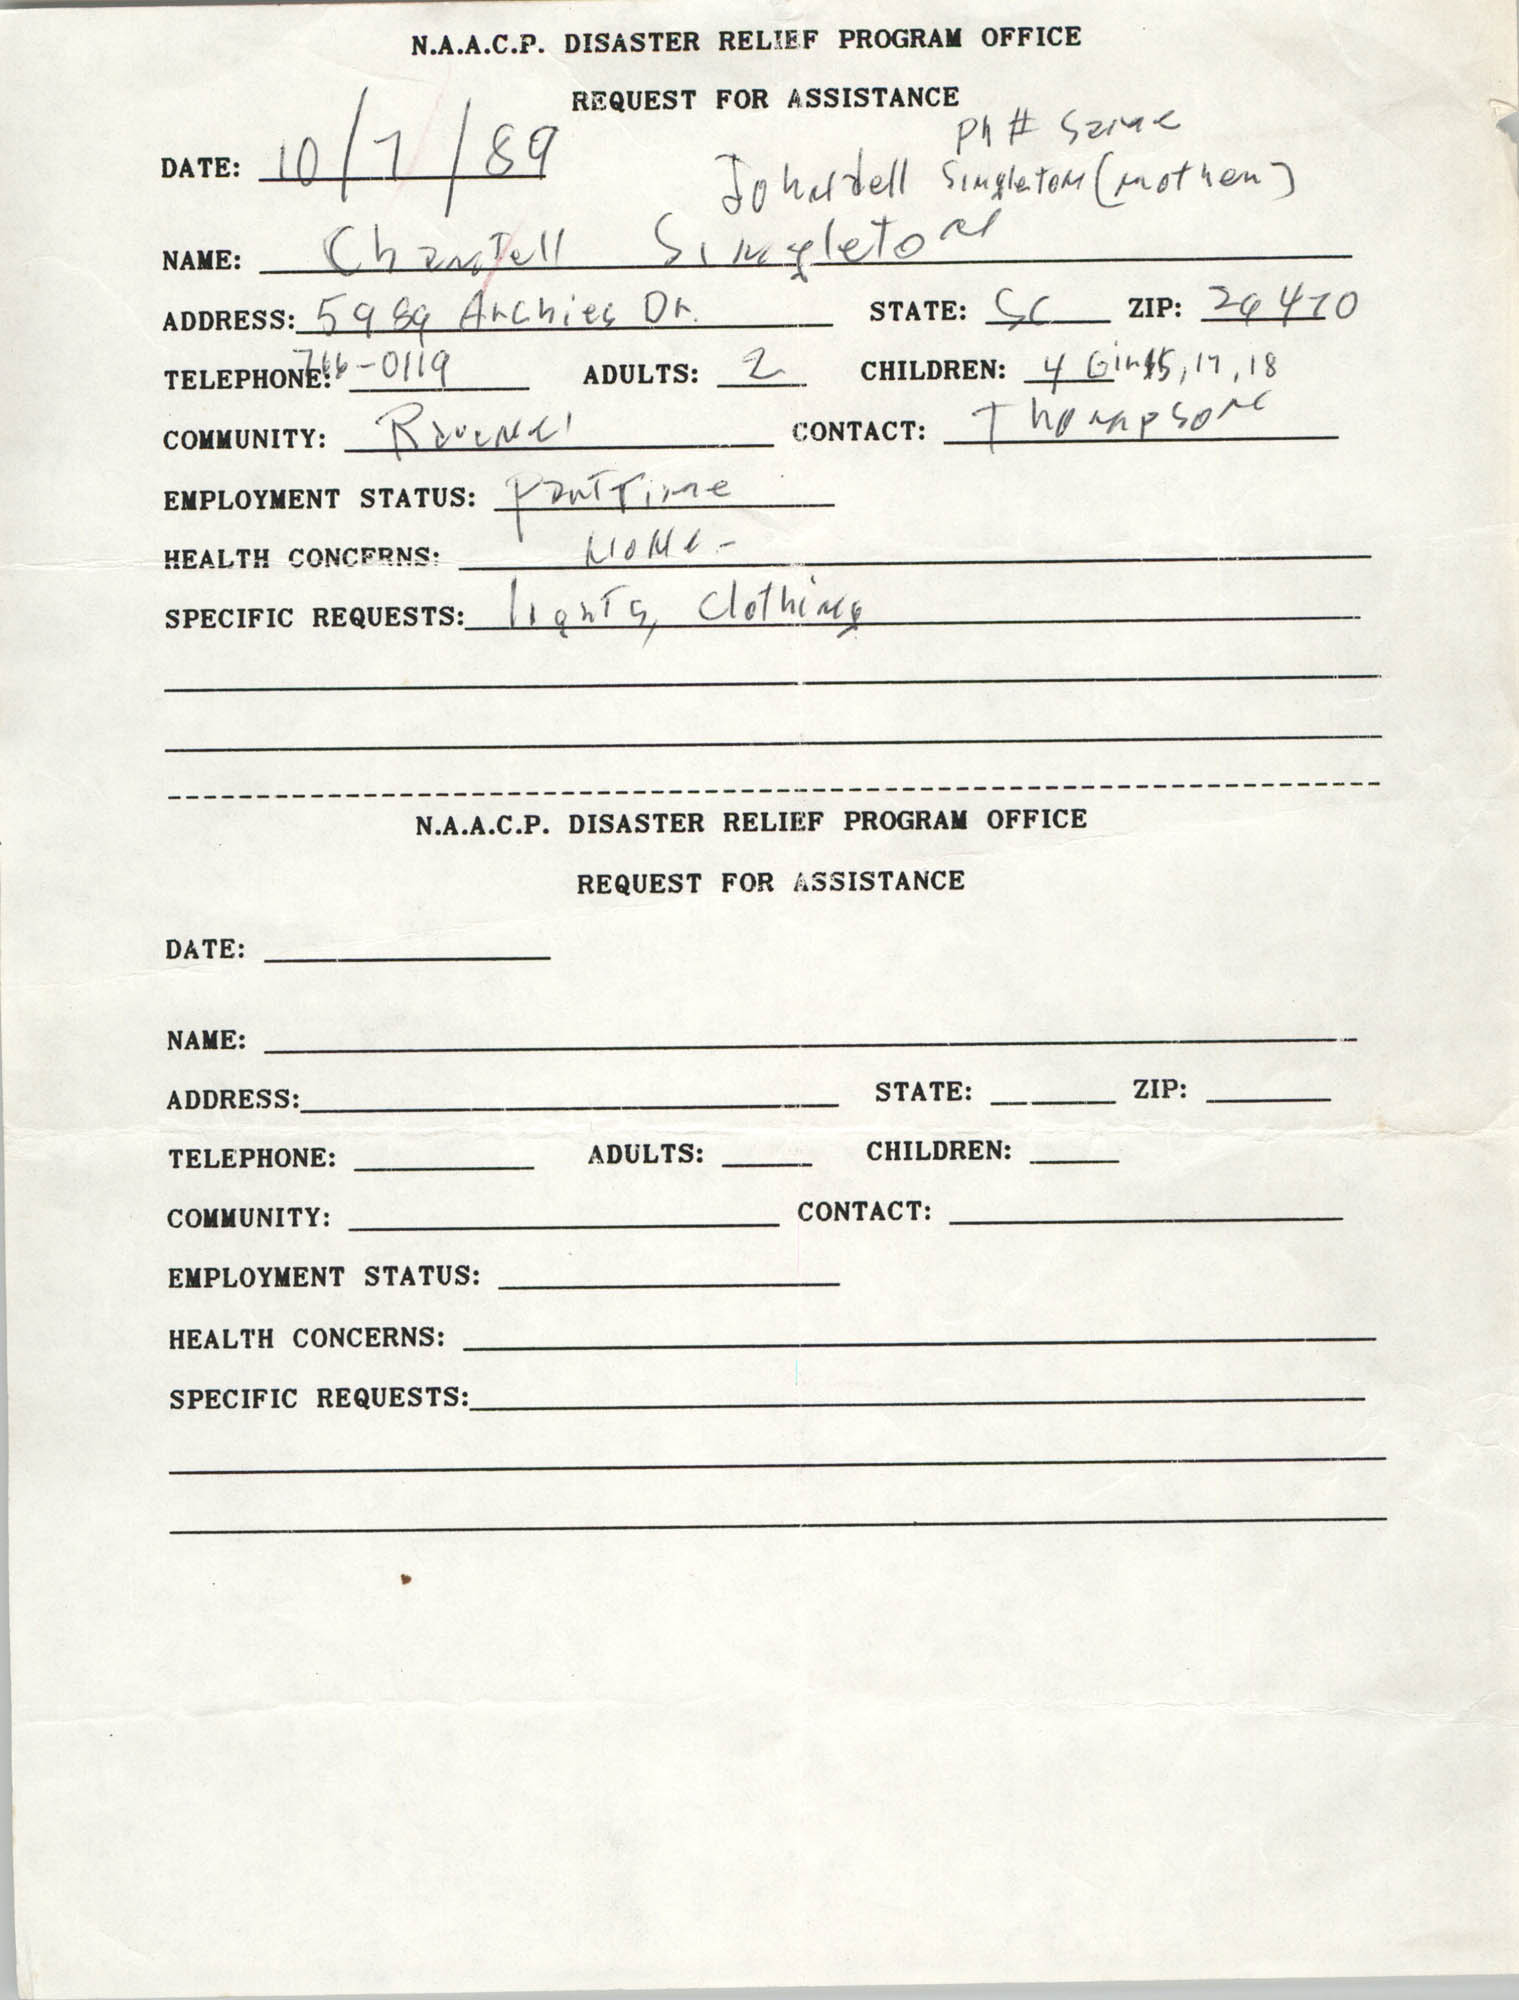 NAACP Disaster Relief Program Office, Hurricane Huge Requests for Assistance, 1989, Page 11